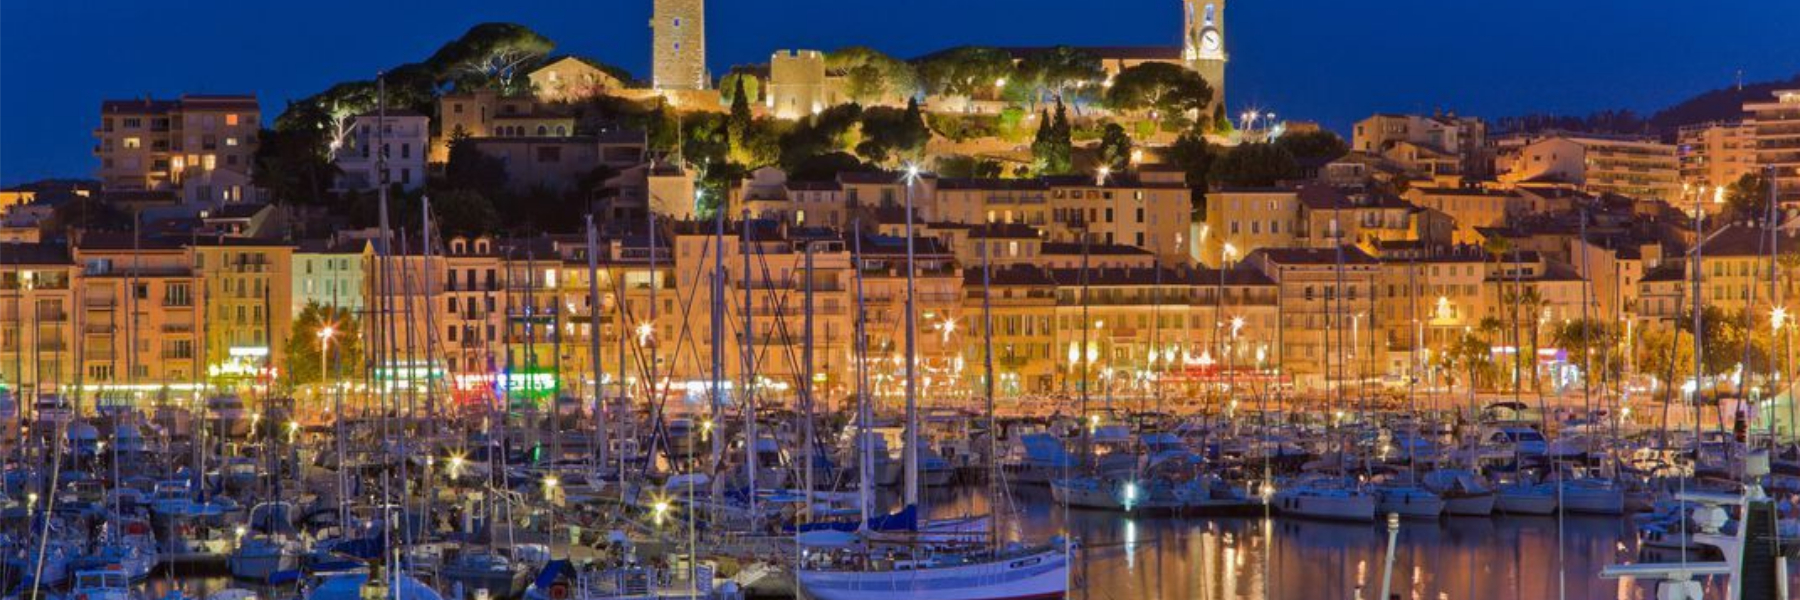 a campsite in the French Riviera perfect for exploring seaside cities